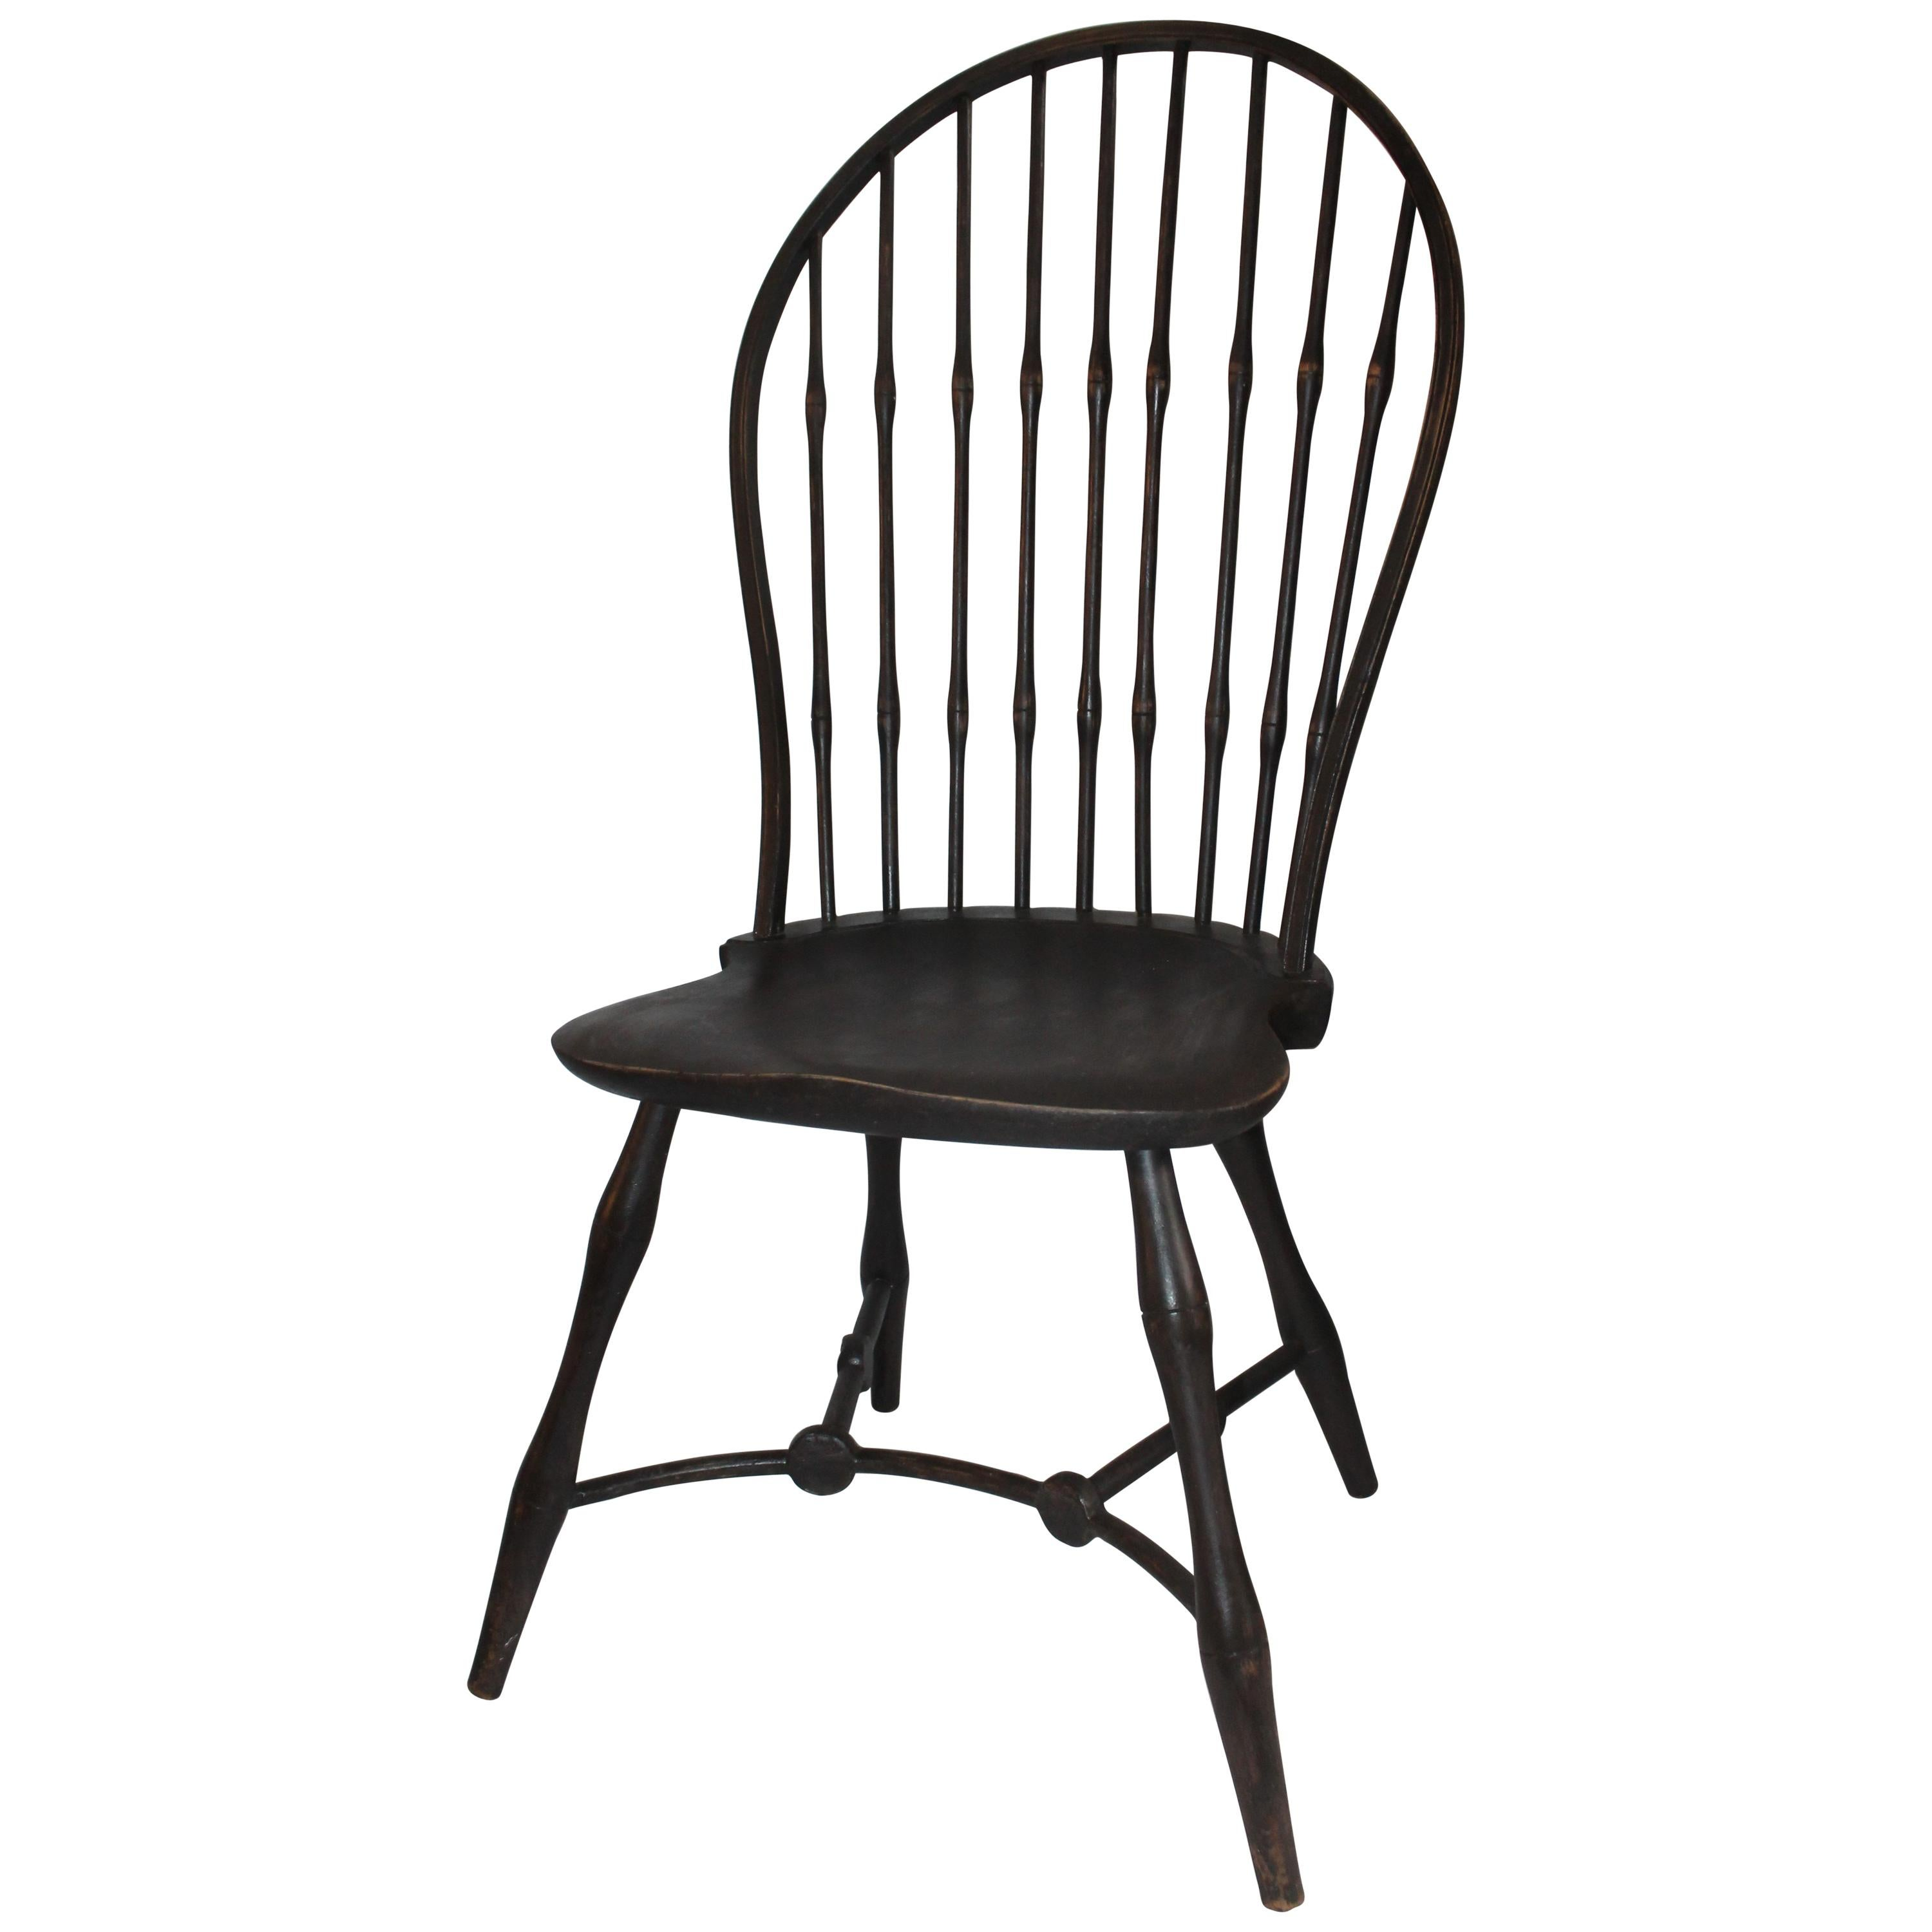 19th Century Windsor Chair with Balloon Back